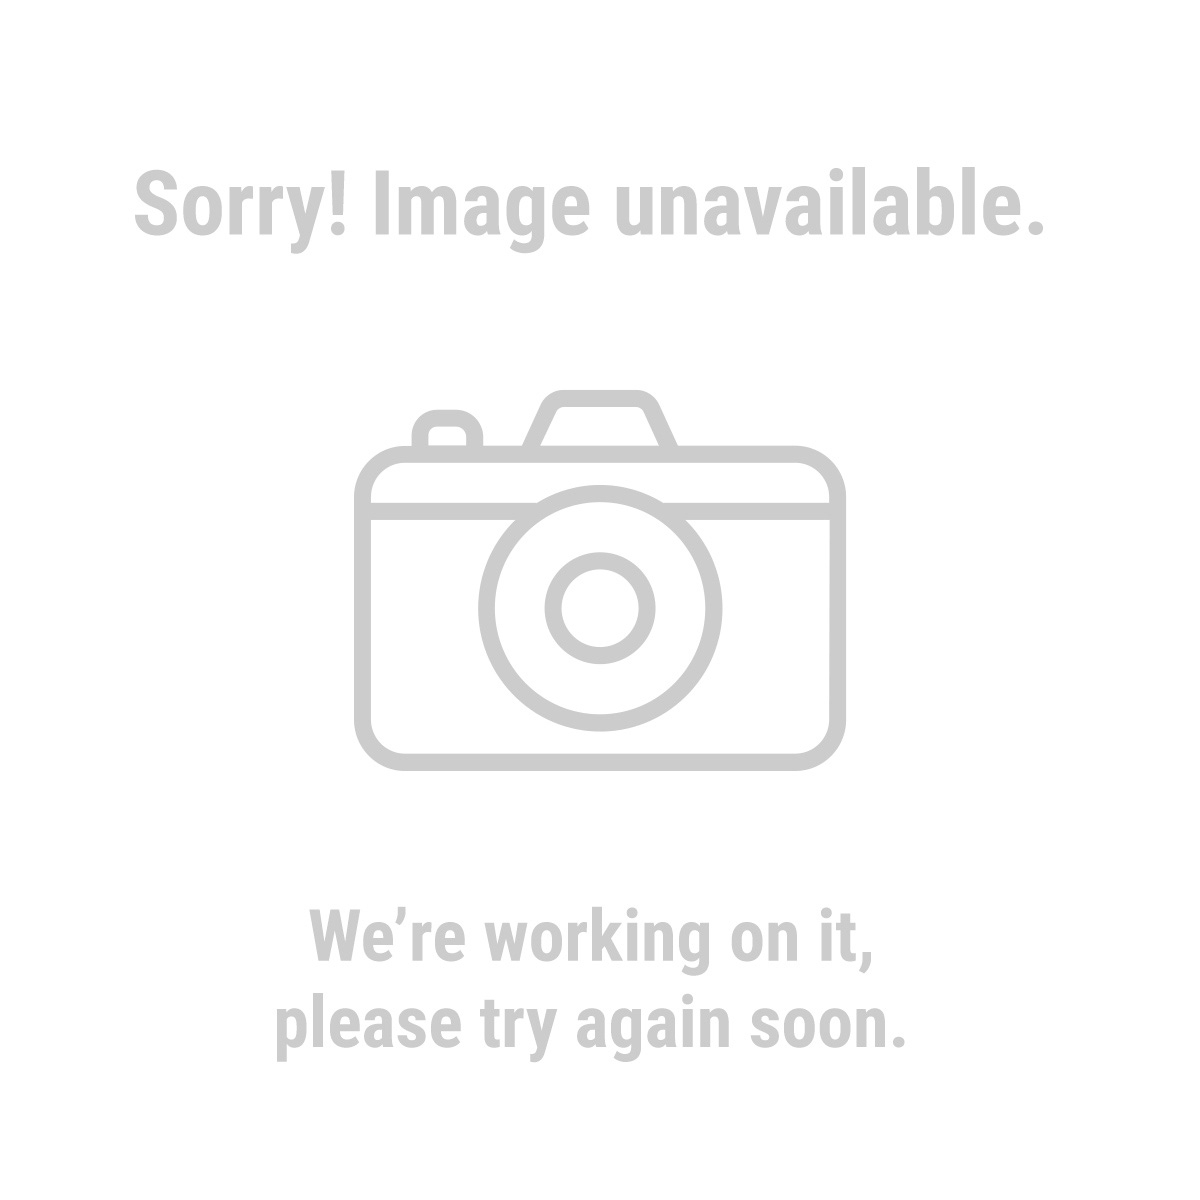 "Central-Forge 32997 6"" Cross Slide Vise"